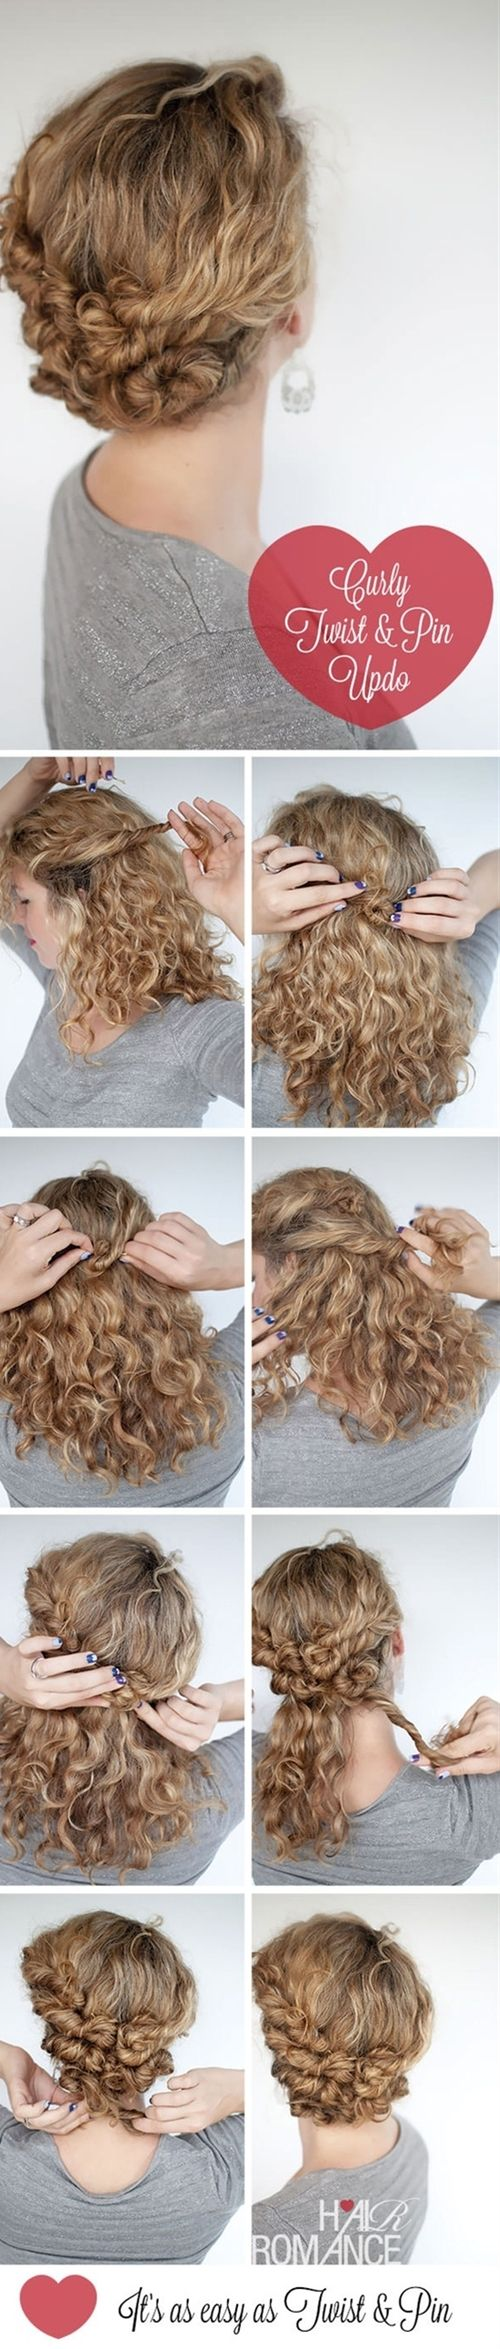 Easy travel hairstyles how to twist and pin updo curly hair updo